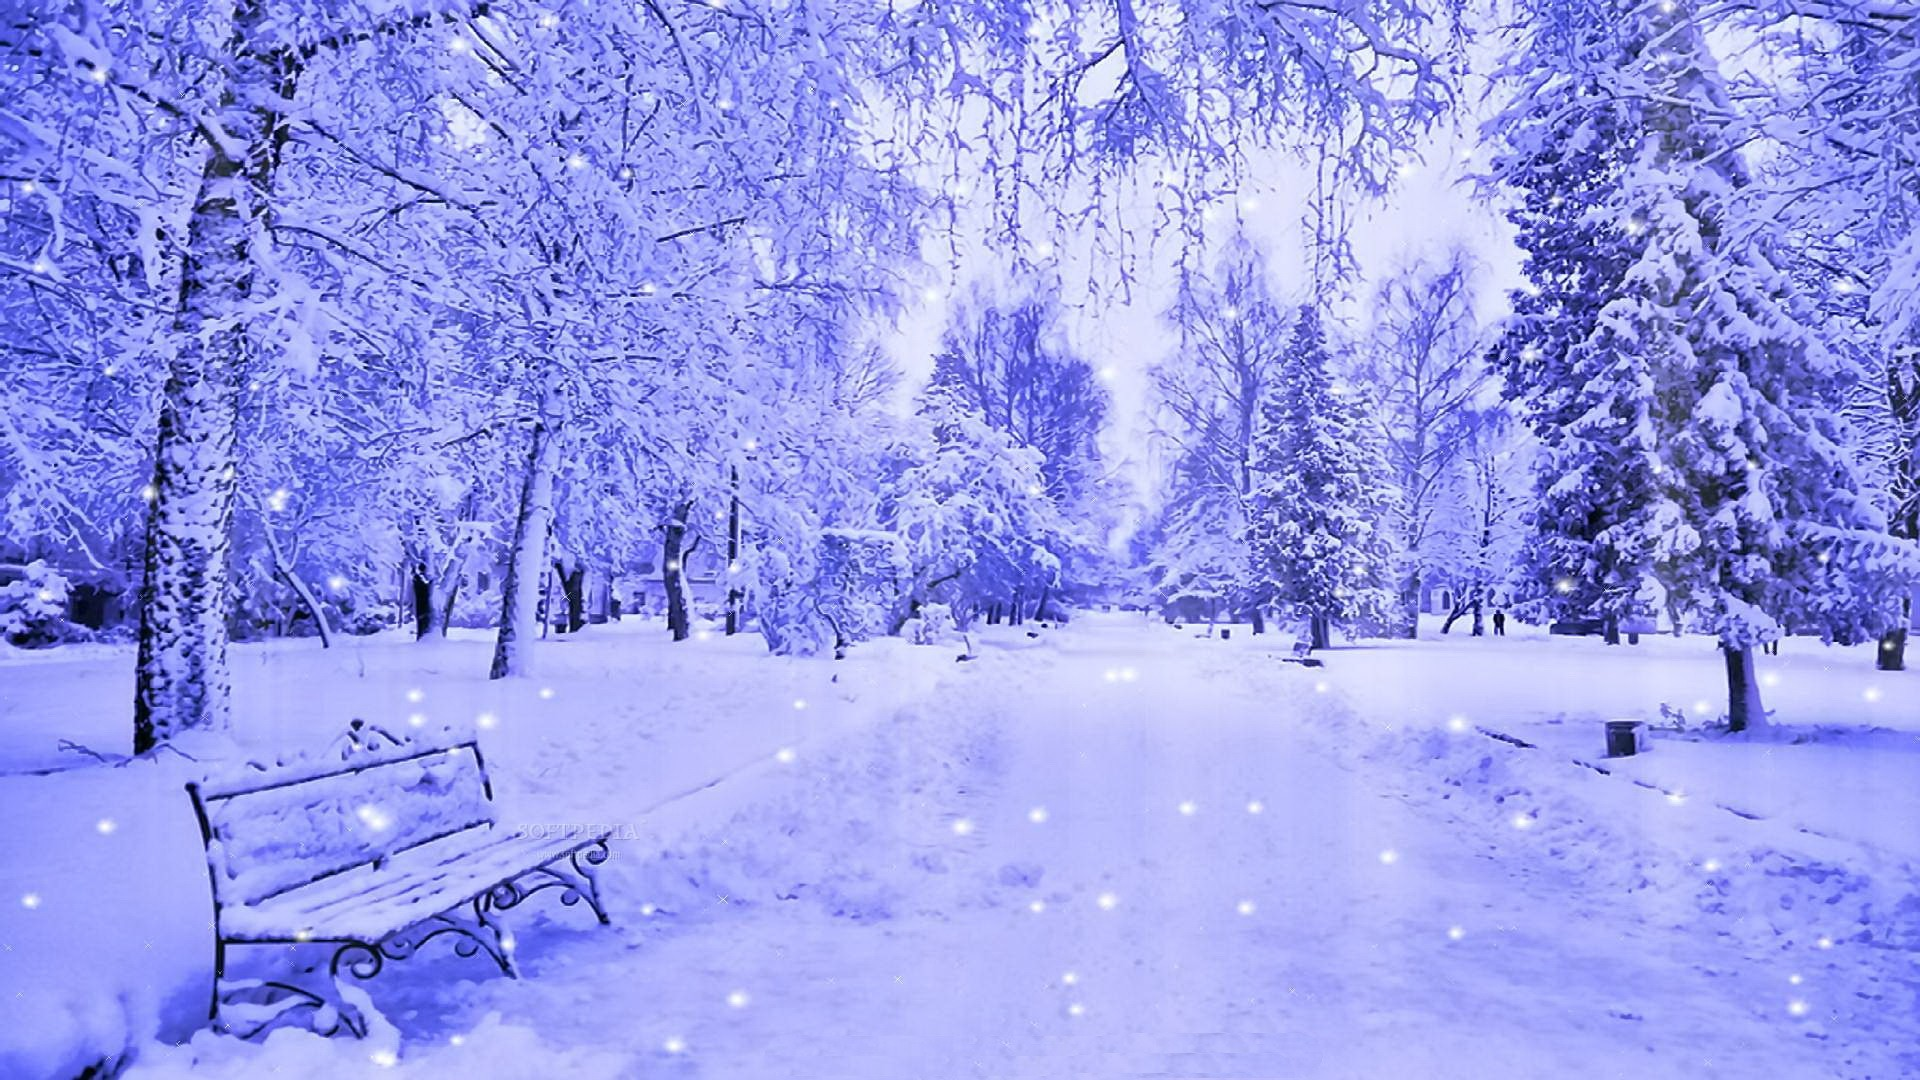 Snowy desktop backgrounds 46 images - Snowy wallpaper ...